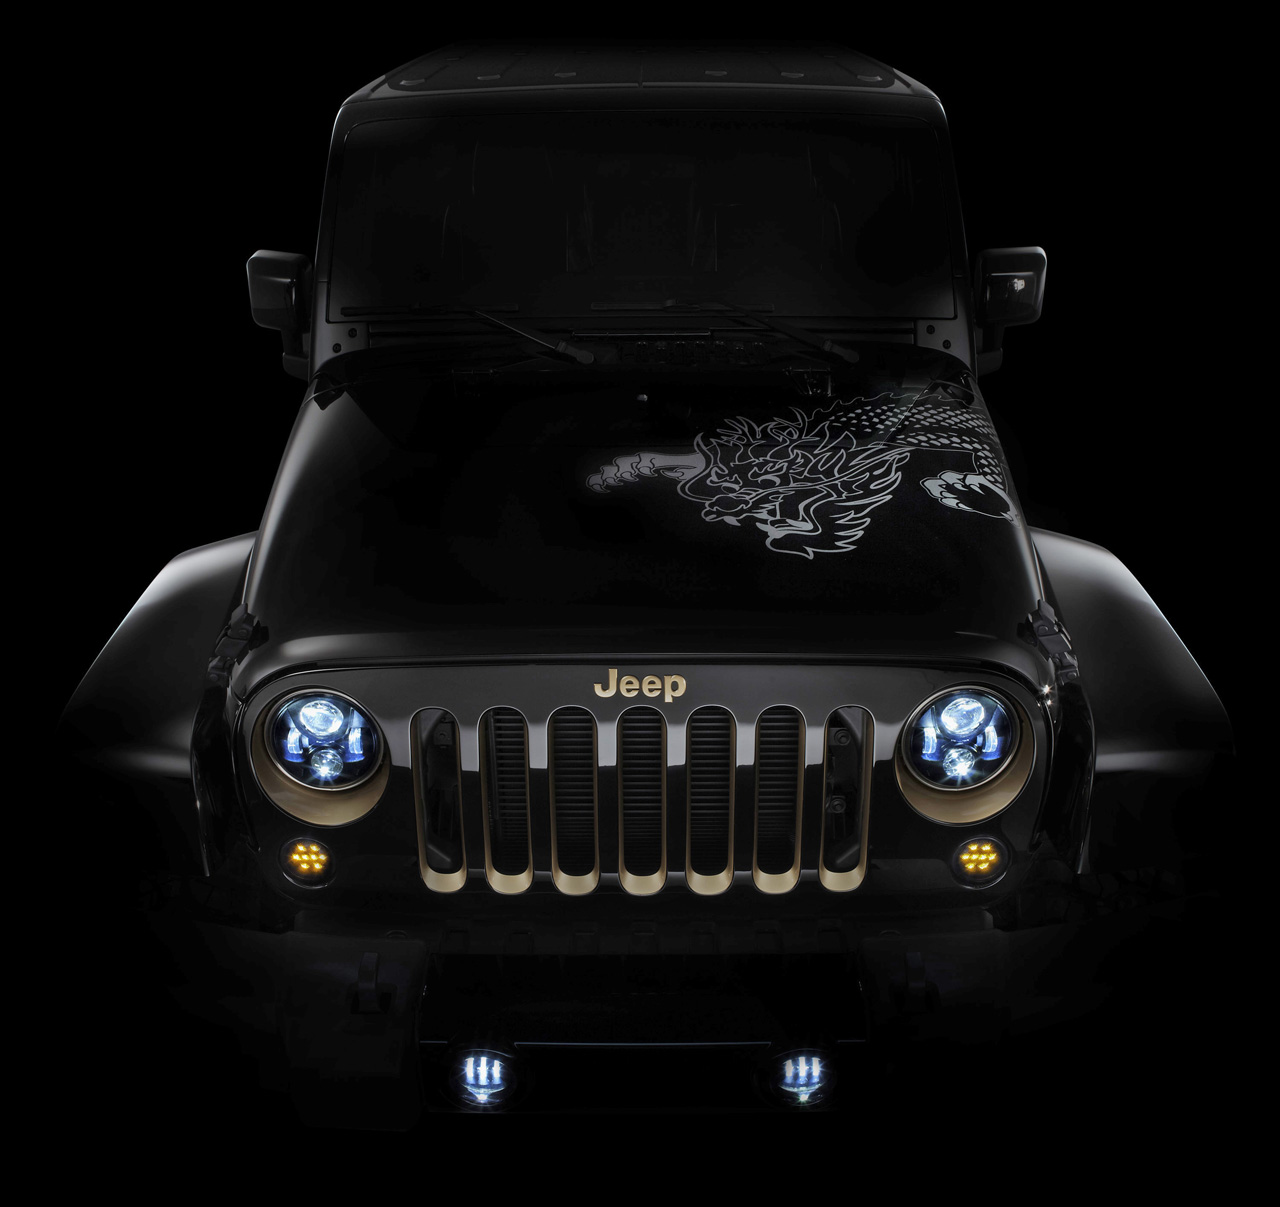 jeep wrangler with led headlights. Cars Review. Best American Auto & Cars Review